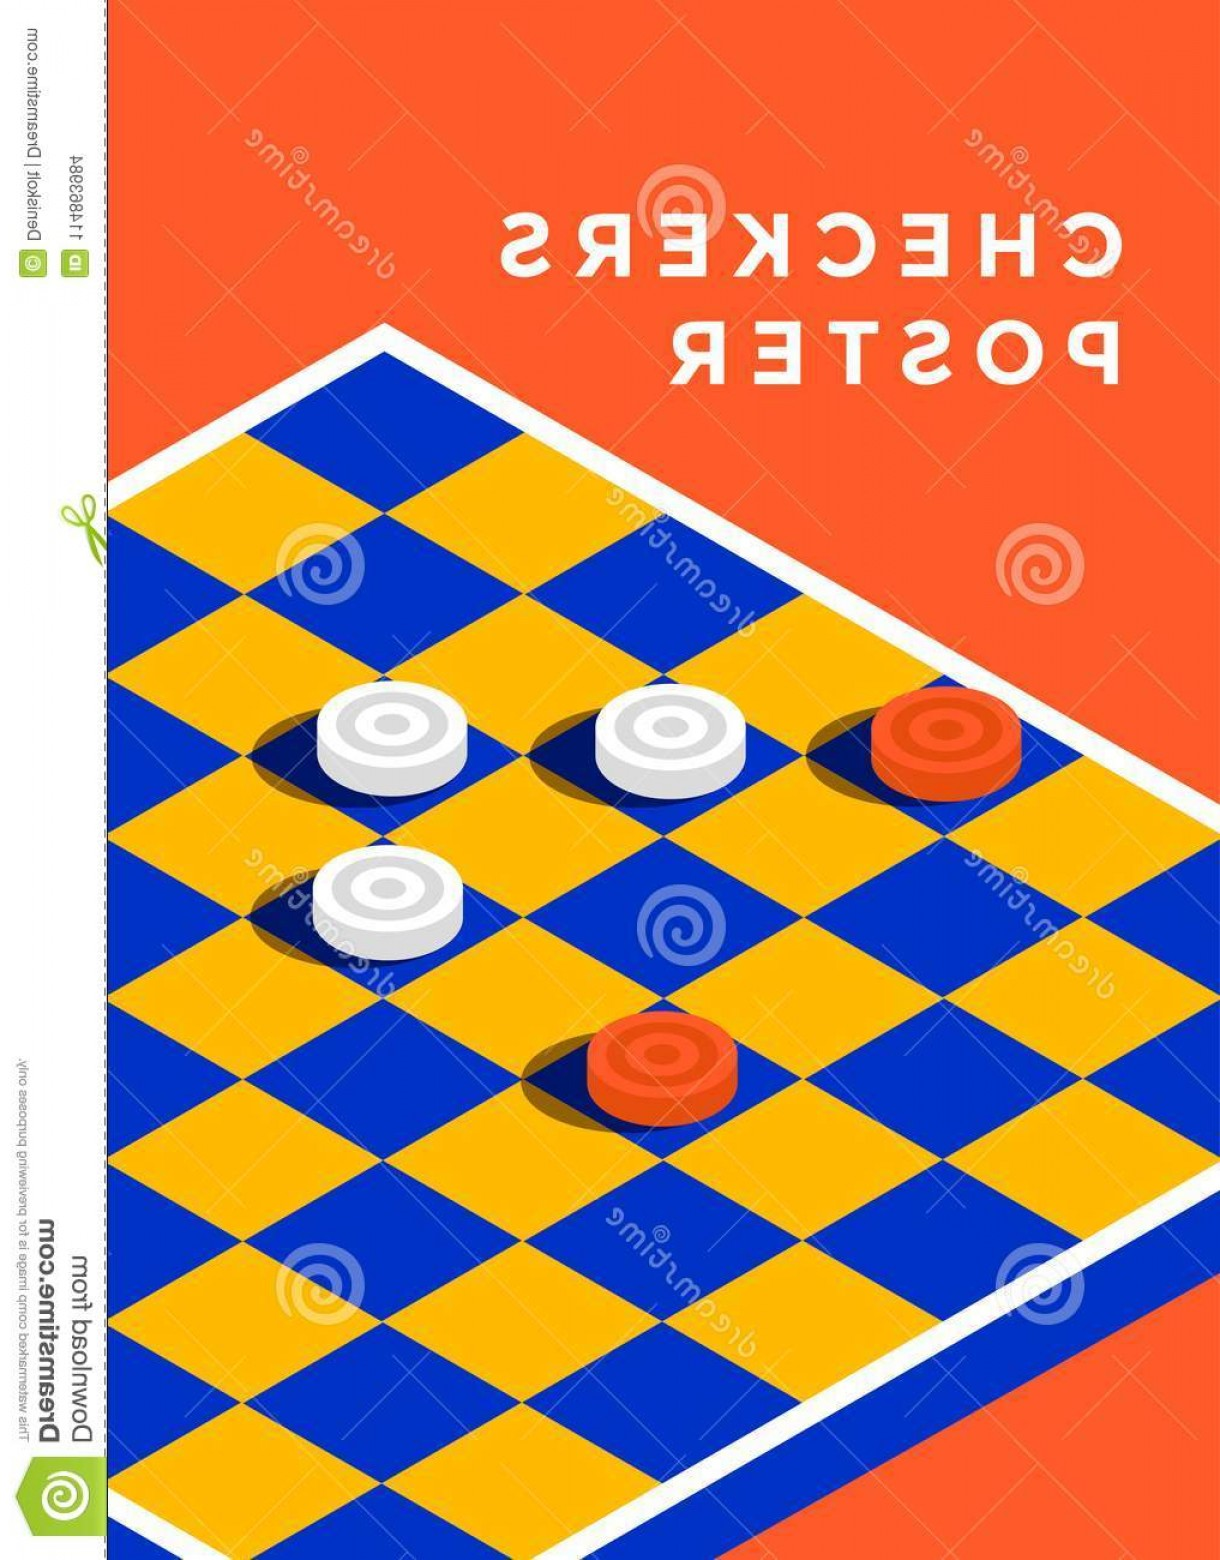 Checker Vector Template: Checkers Game Poster Design Minimal Sport Cover Template Vector Isometric Illustration Image